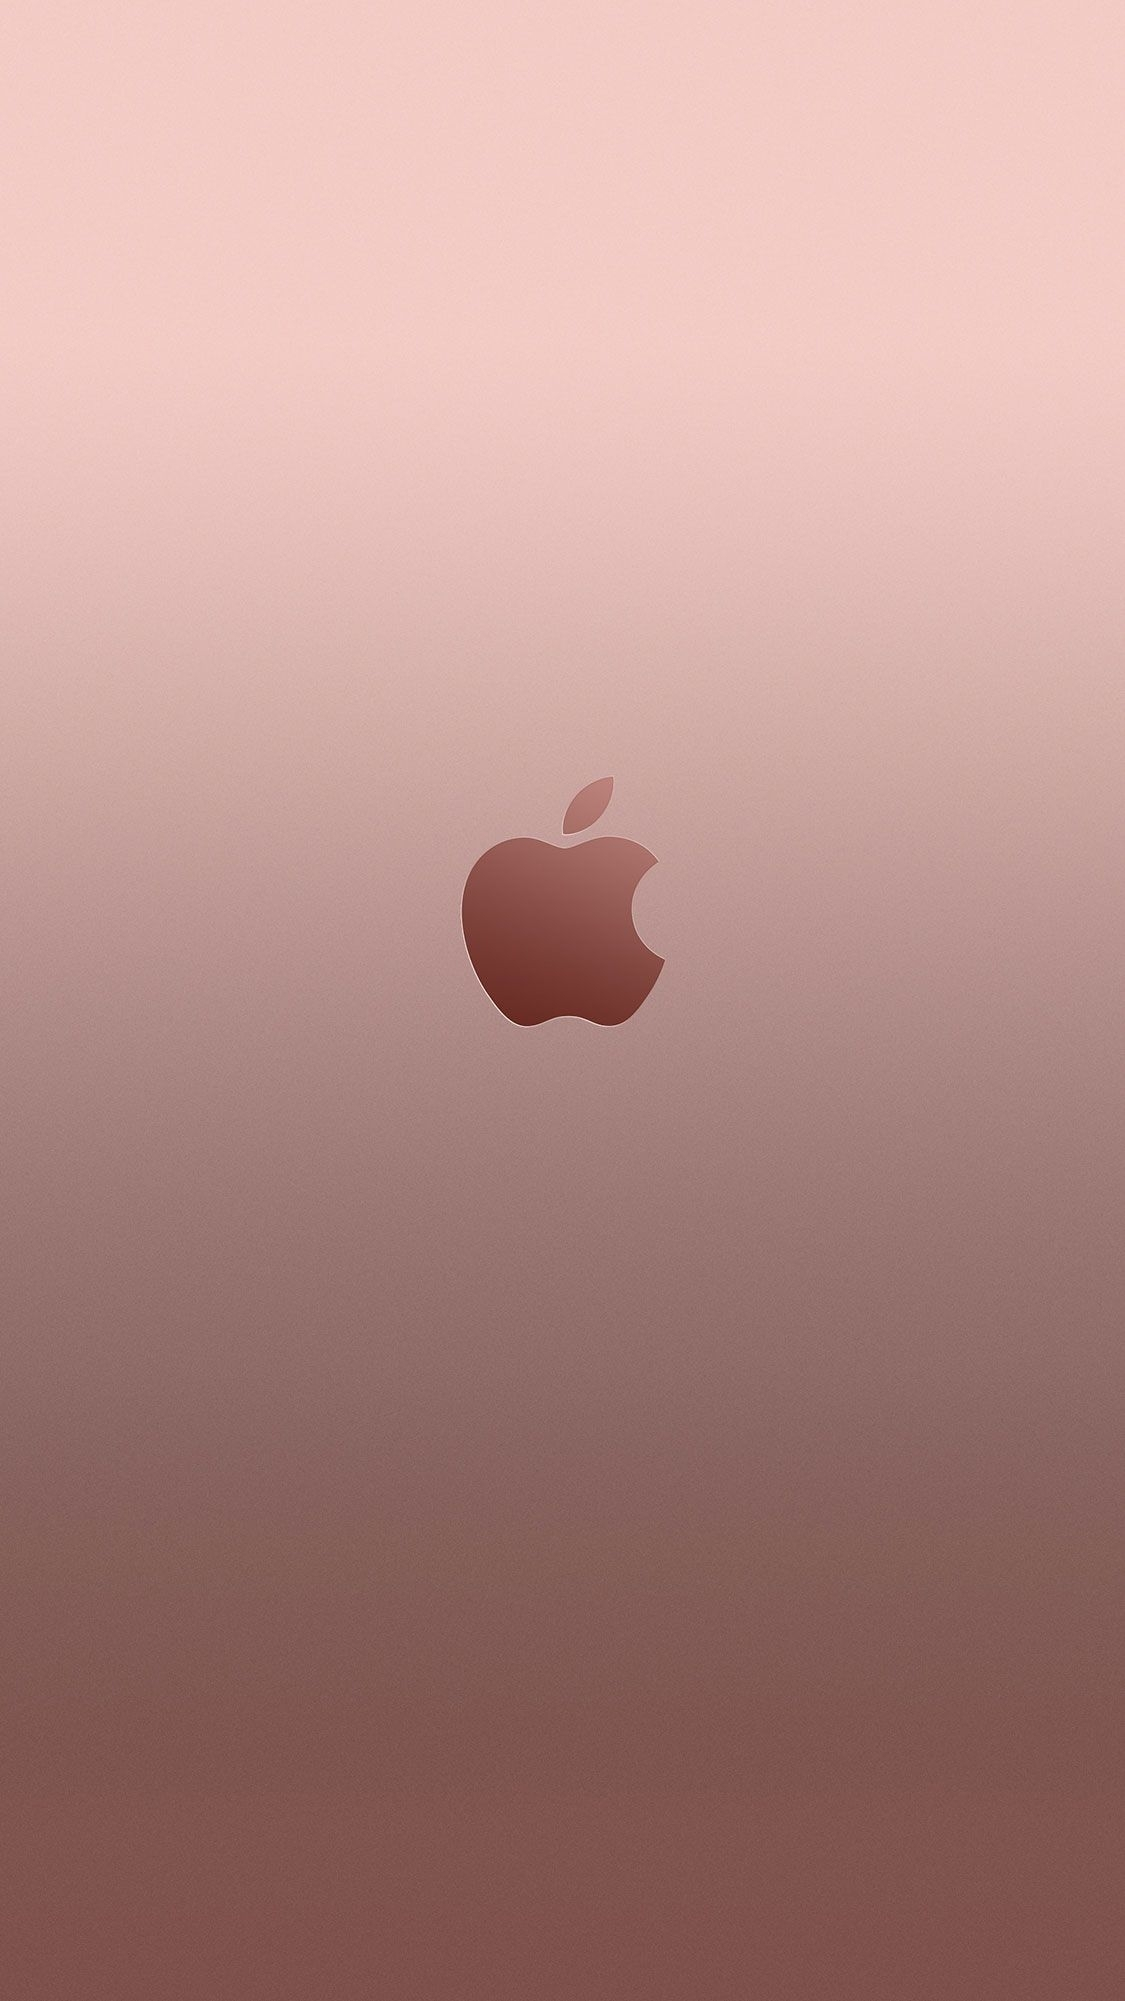 rose-gold--apple-iphone-6s-wallpaper | modeling | pinterest | Écran